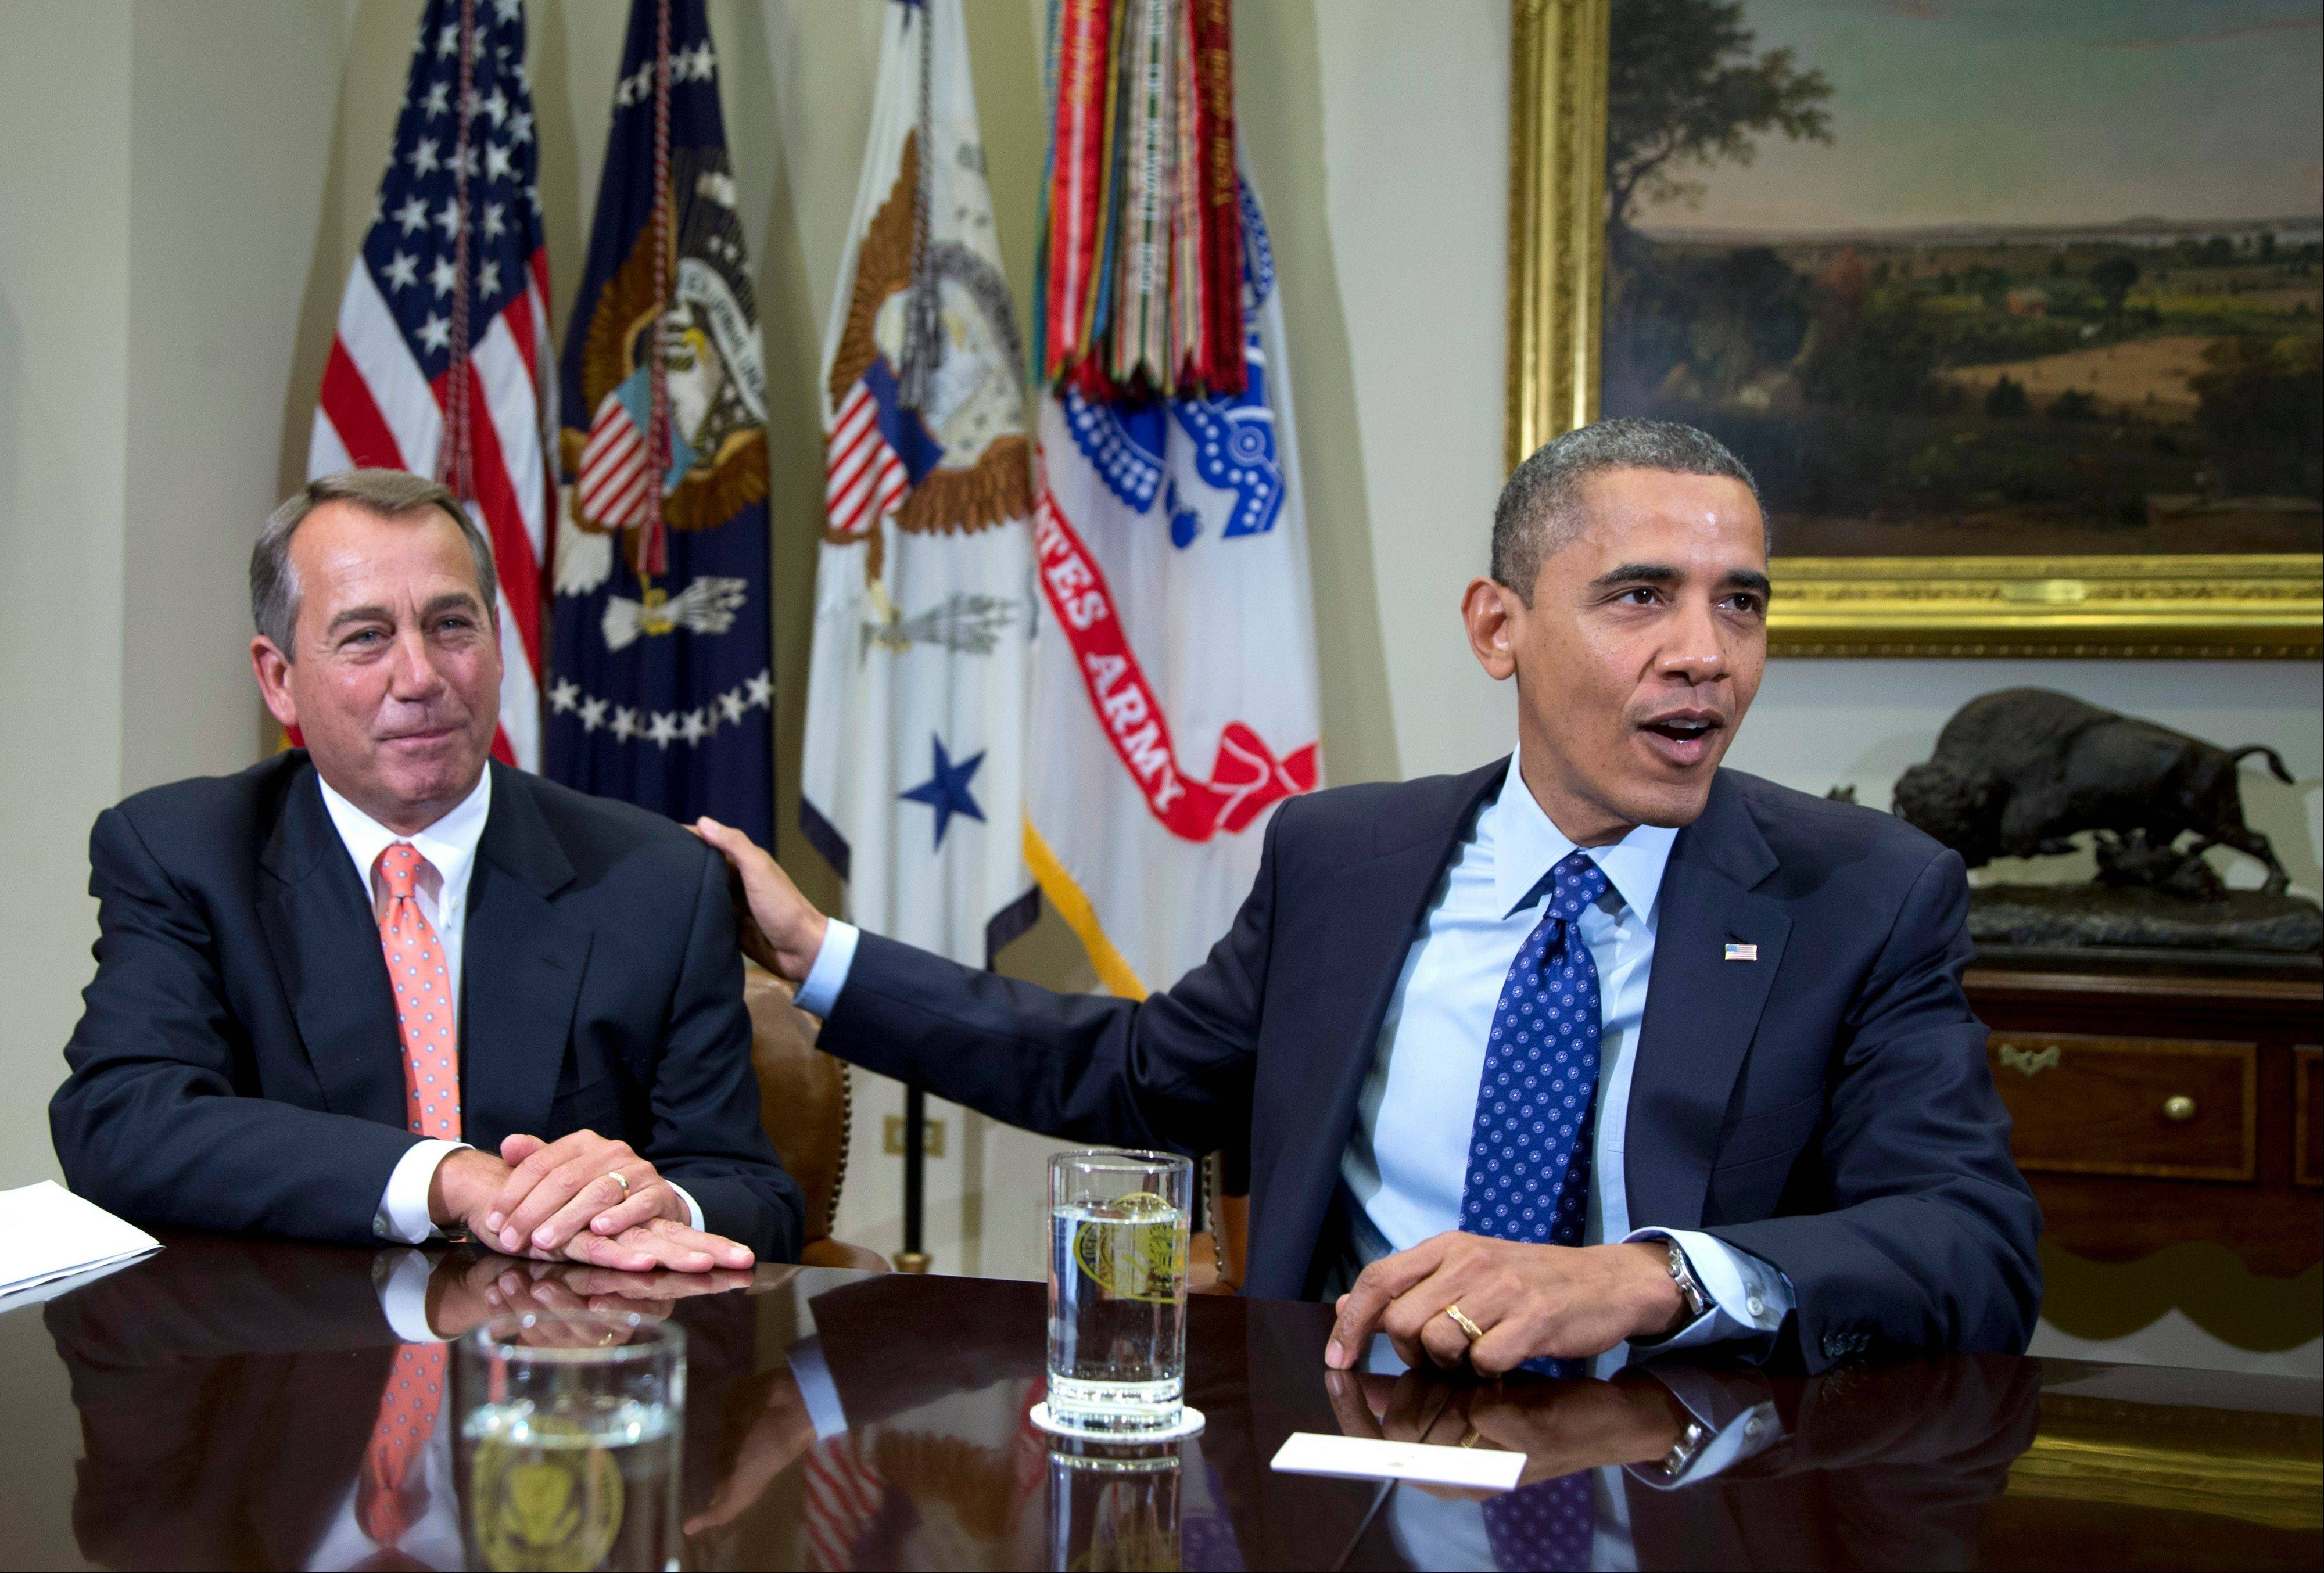 President Barack Obama acknowledges House Speaker John Boehner of Ohio while speaking to reporters in the Roosevelt Room of the White House in Washington, as he hosted a meeting of the bipartisan, bicameral leadership of Congress to discuss the deficit and economy.